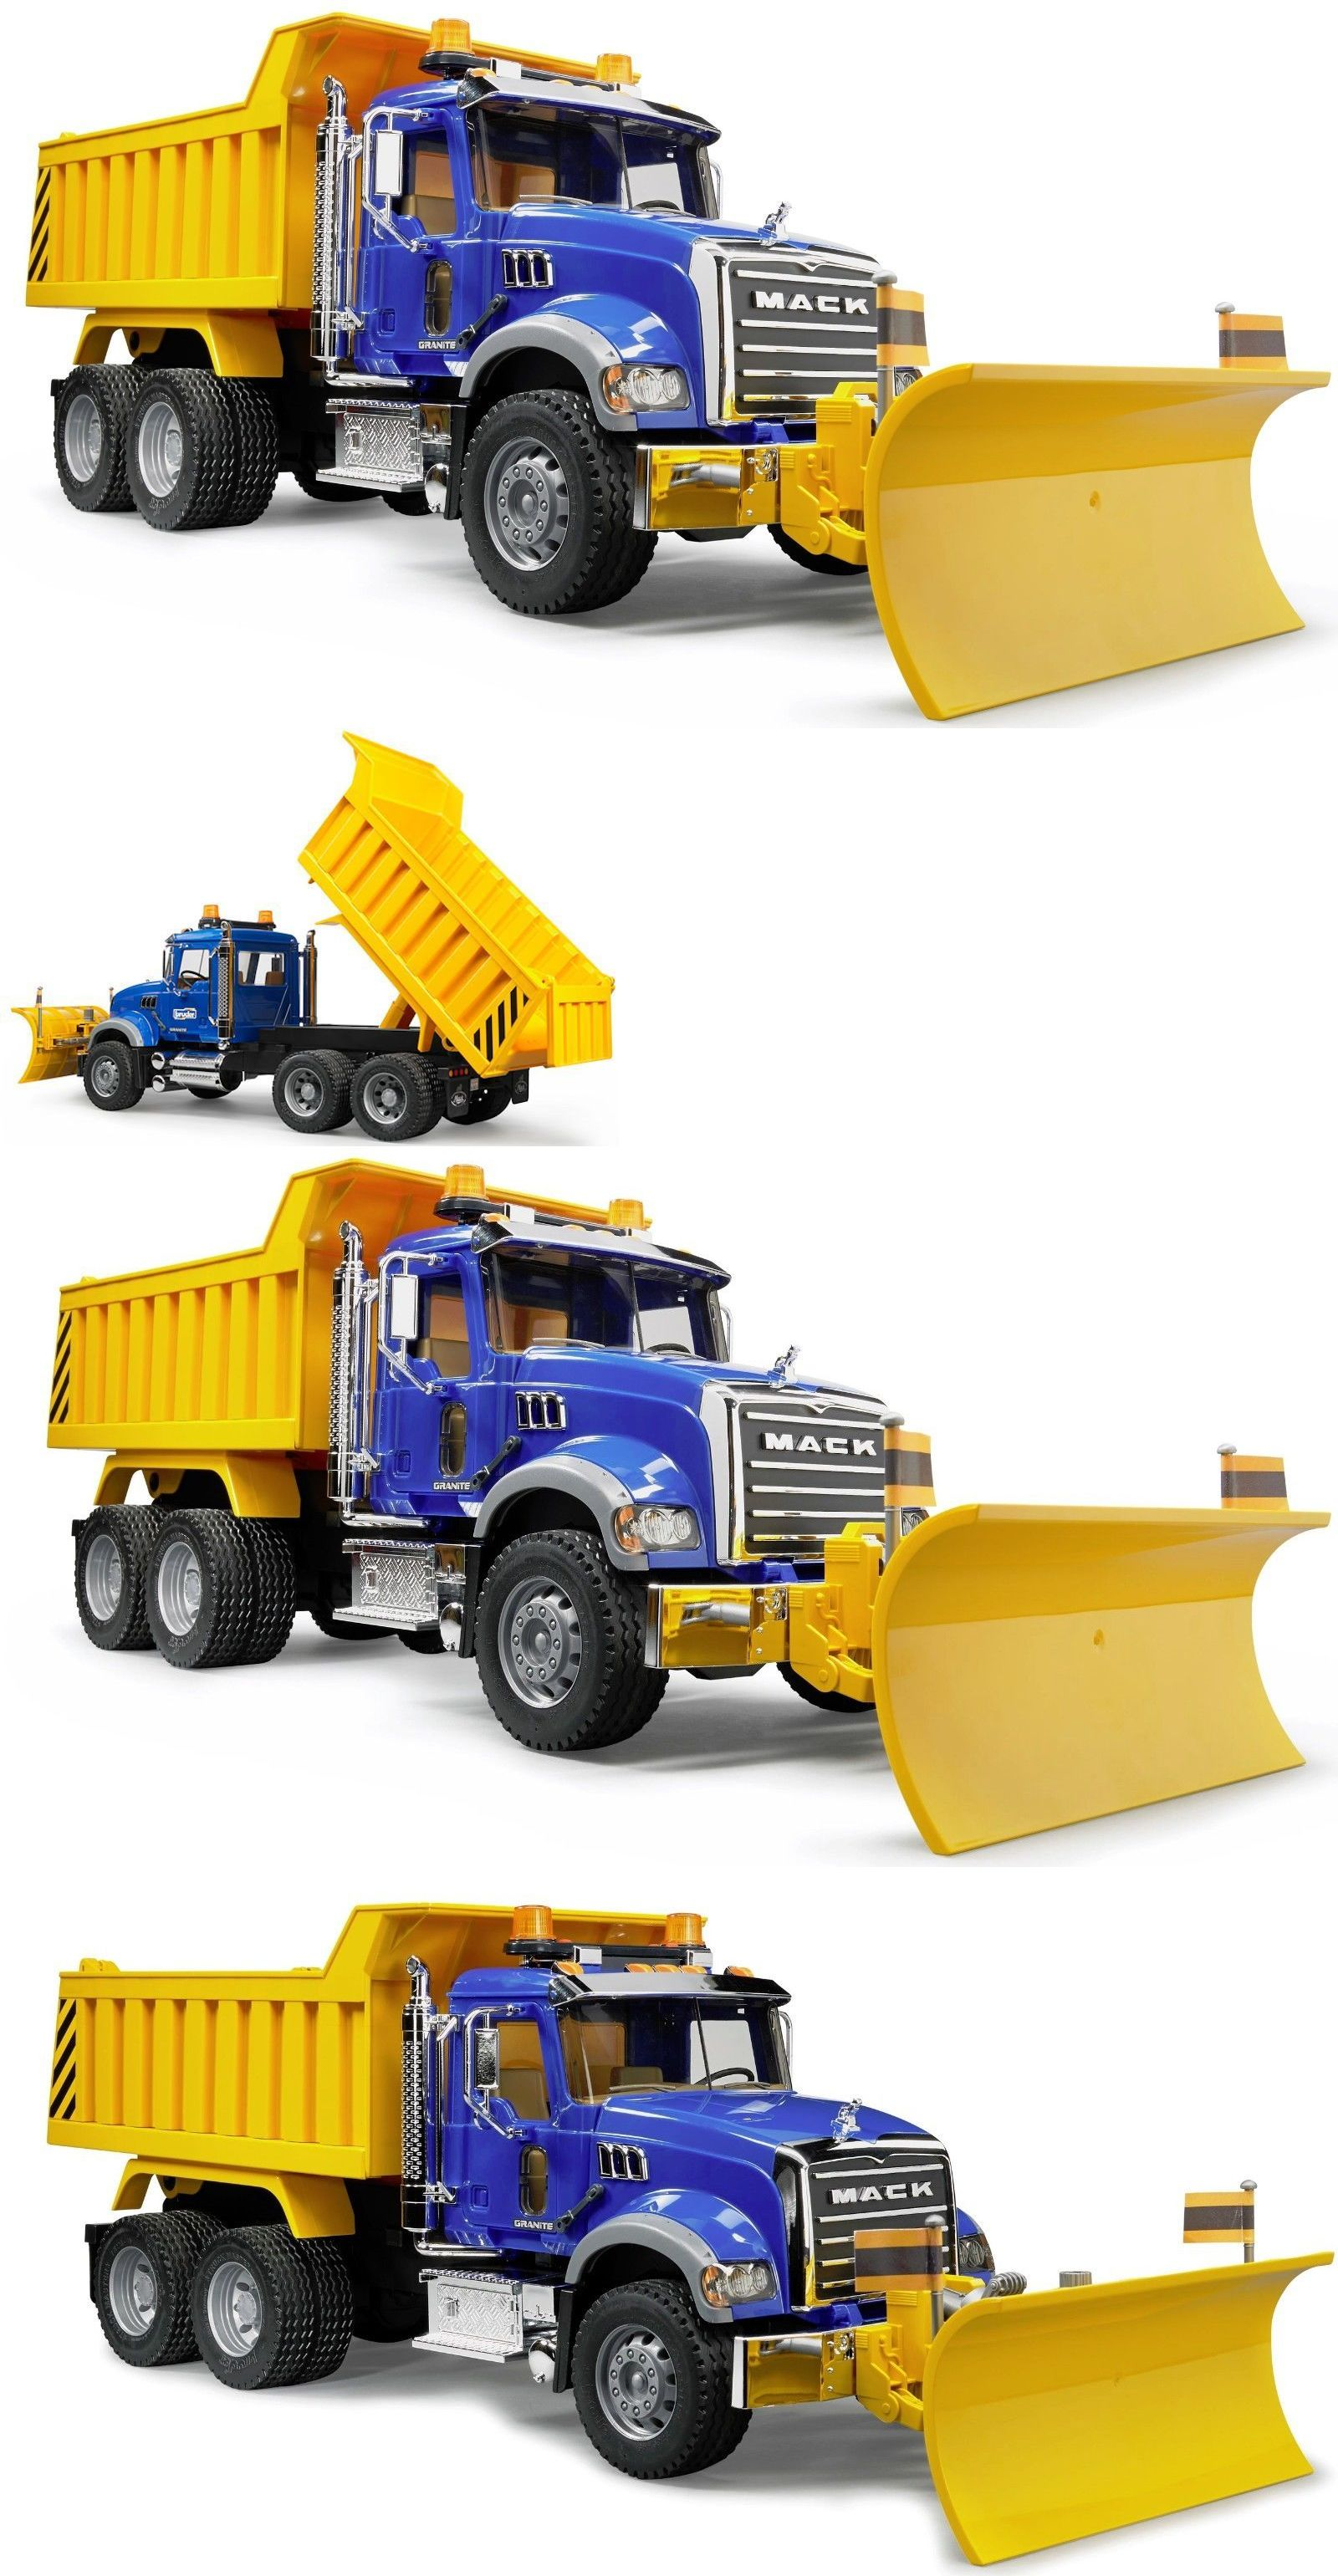 Contemporary Manufacture 152934 Bruder Toys Kids Mack Granite Dump Truck With Snow Plow Blade 02825 New Buy It Now Only 75 5 Trucks Snow Plow Dump Truck